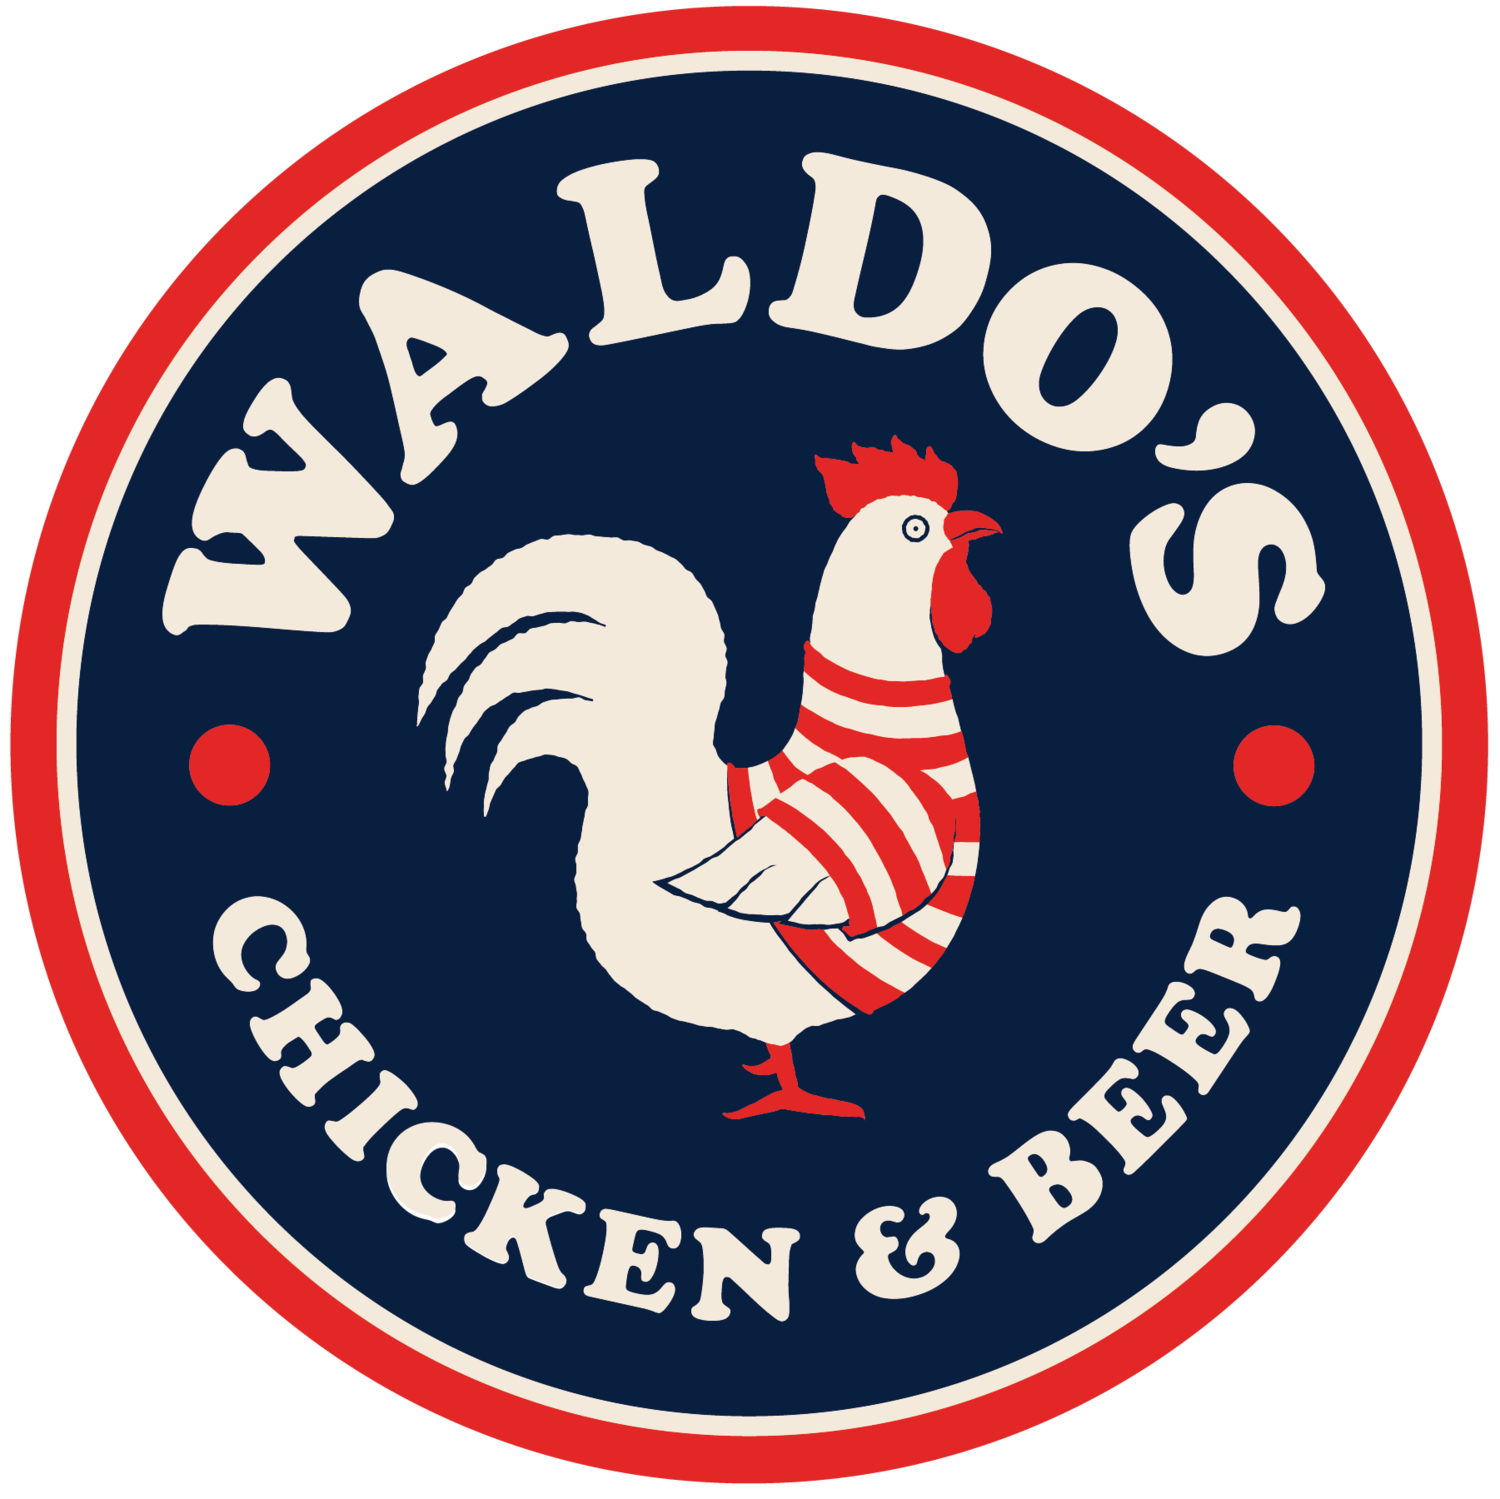 Waldo's Chicken and Beer